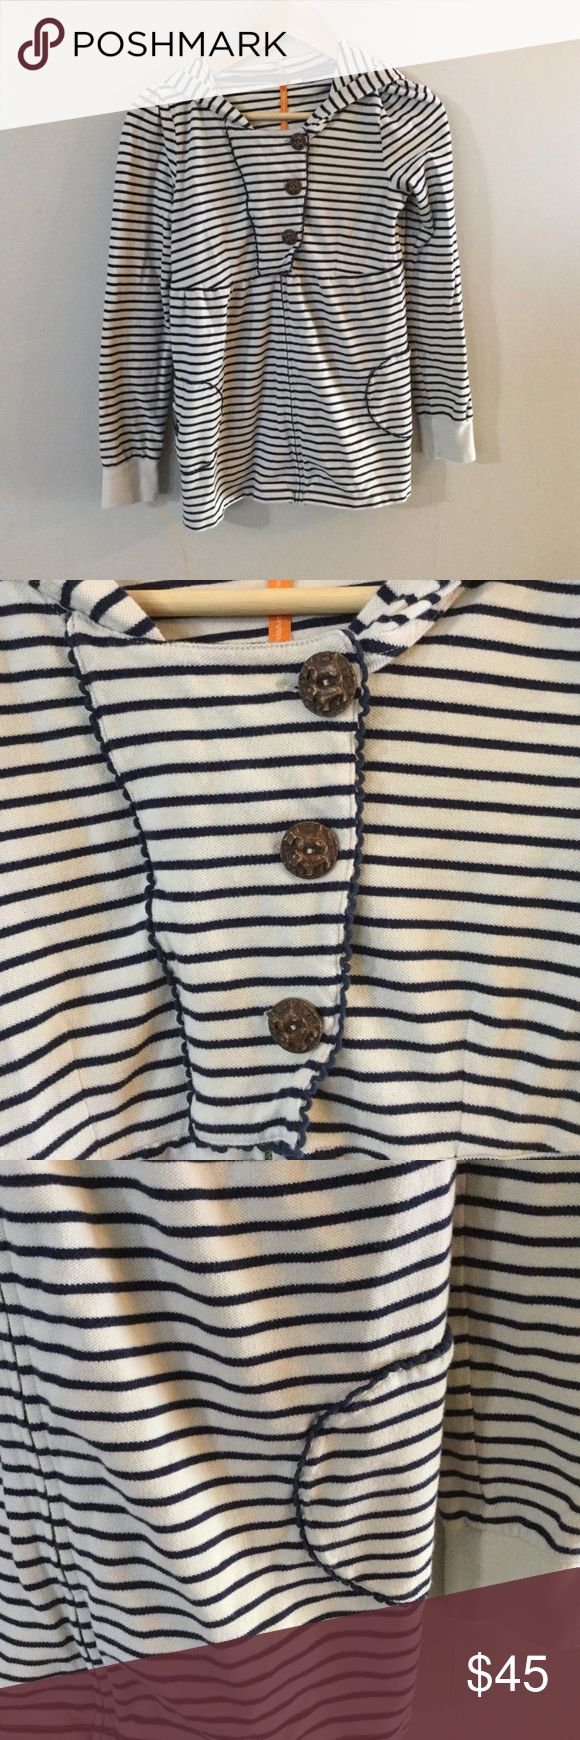 Anthropologie Saturday Sunday Striped Hoodie S On sale is an Anthropologie Saturday/Sunday striped zip up hoodie. It has dog detailing on the buttons. The hoodie is a women's small and it is in good, used condition.   The measurements are approximations Length (Shoulder to hem)- about 25 3/4 inches  Width (Pit to pit)- about 15 inches Anthropologie Sweaters